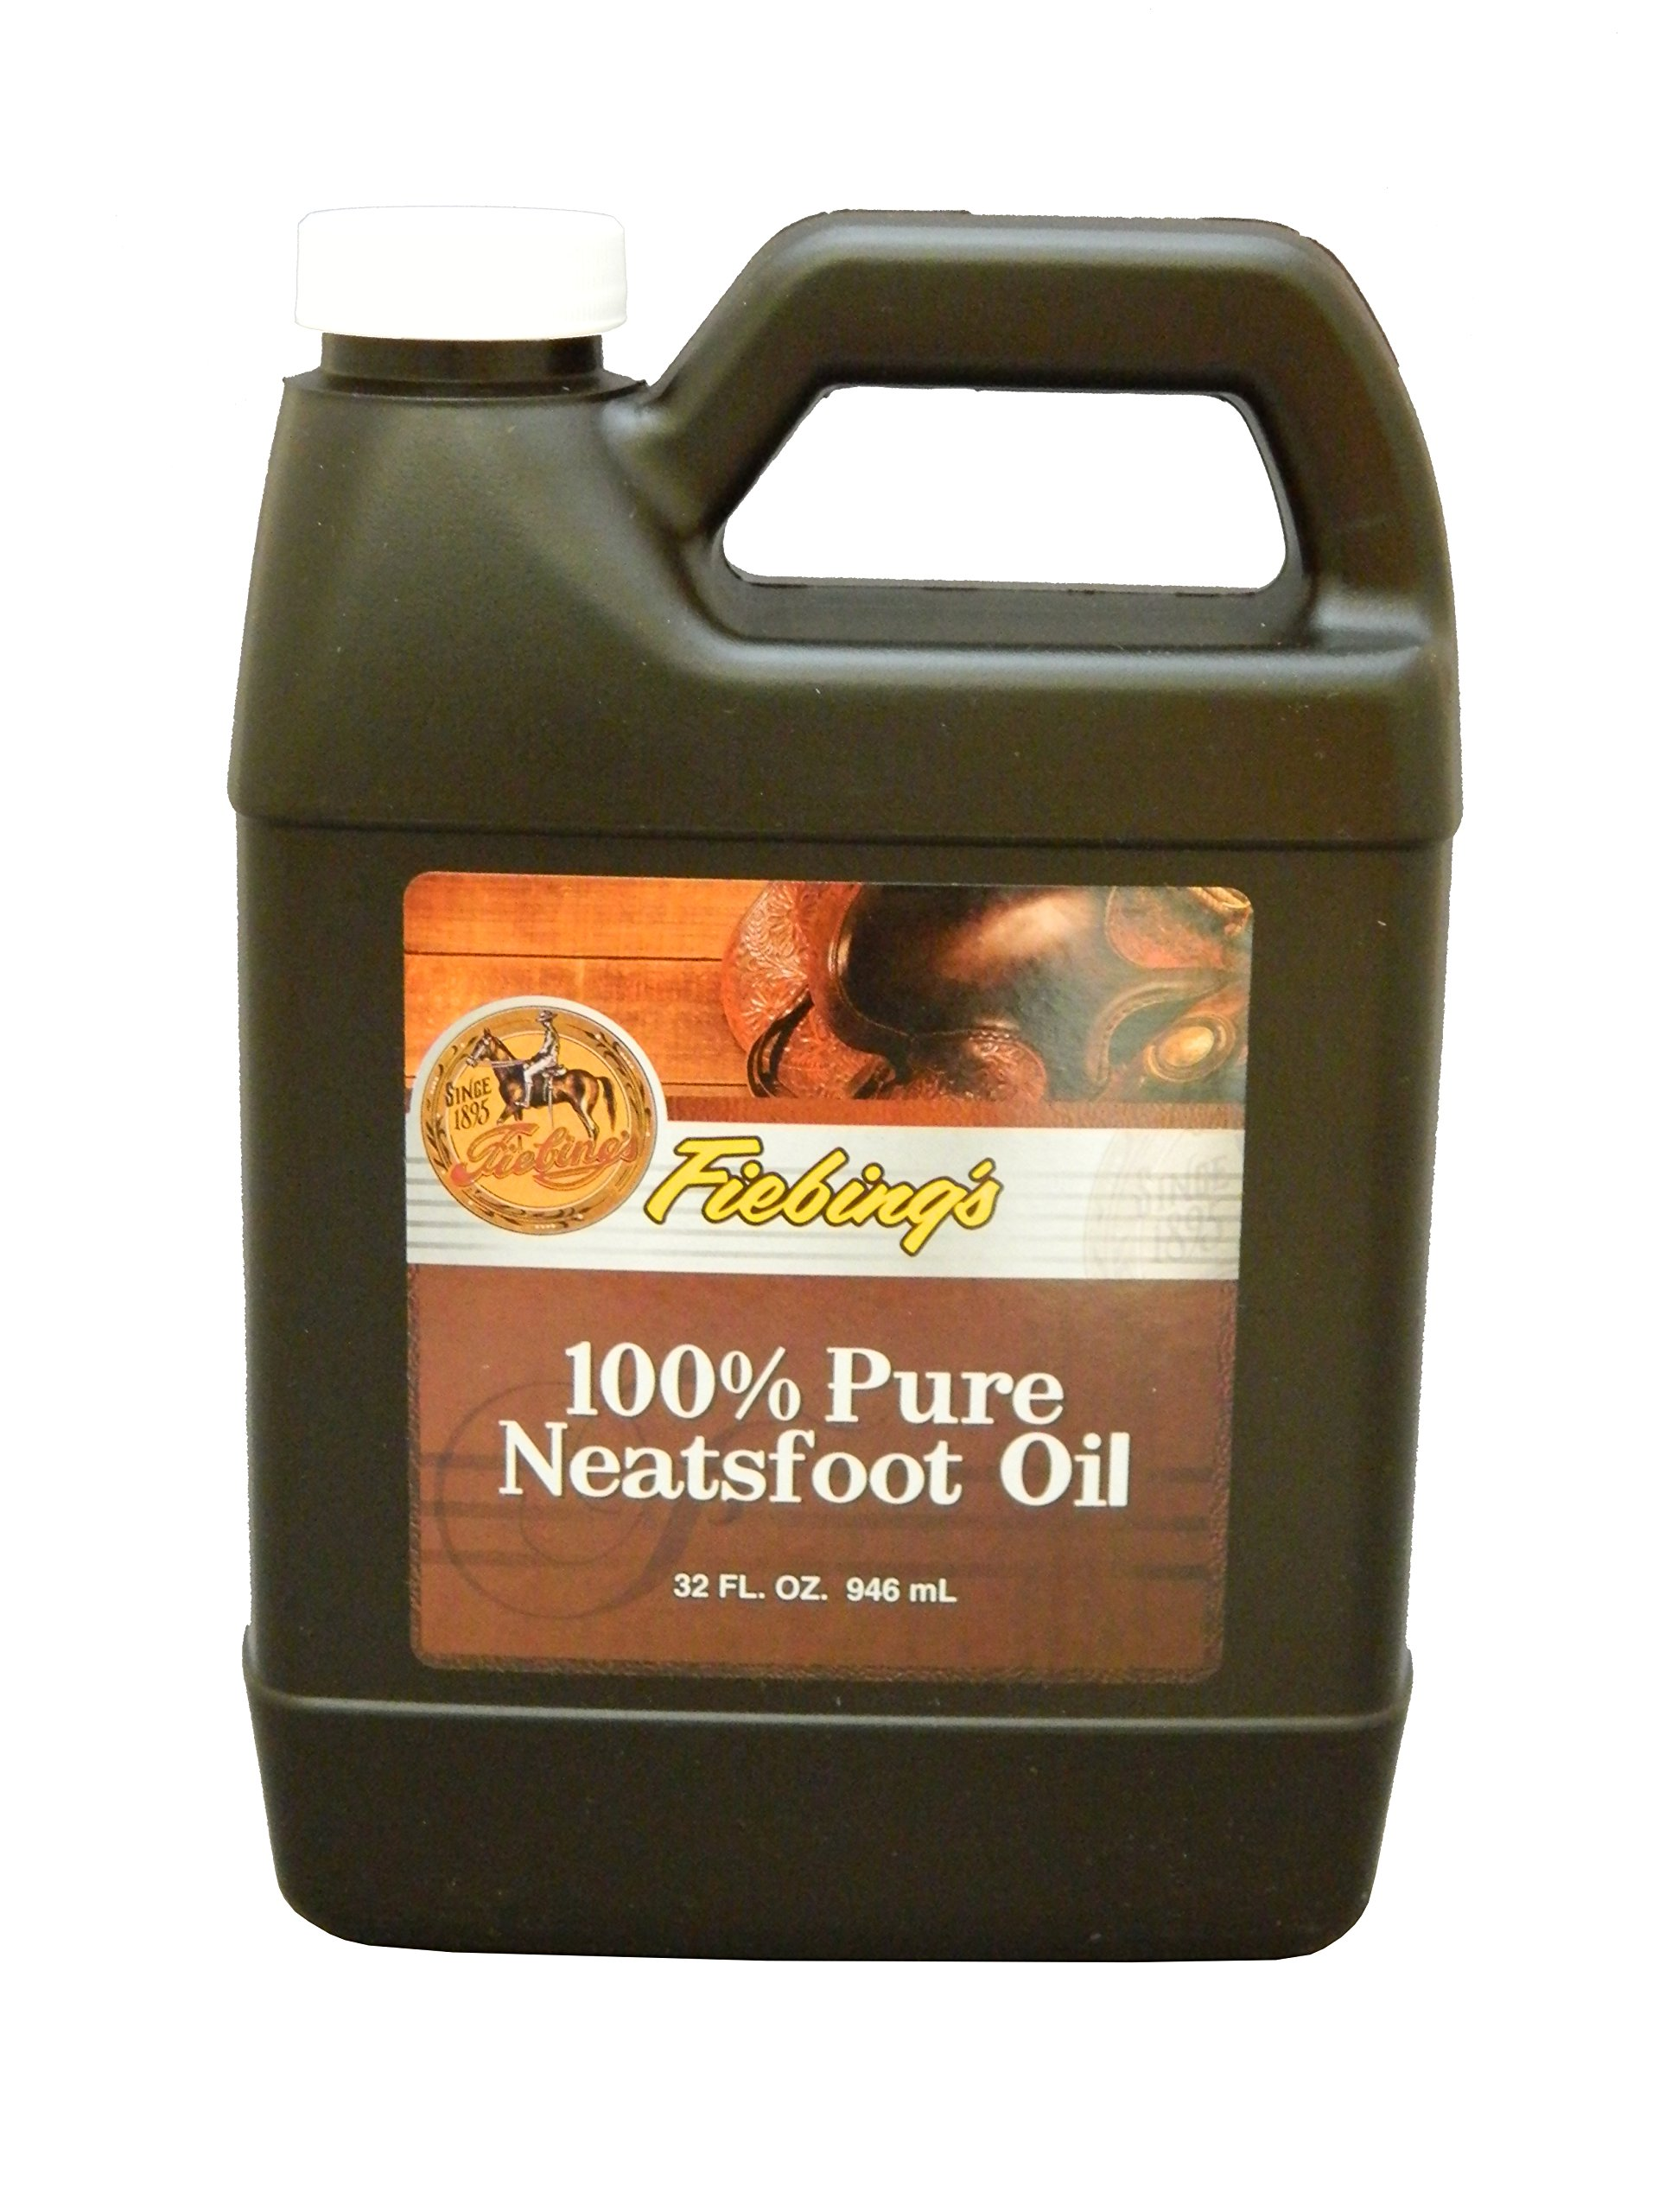 Fiebing's Neatsfoot Oil Leather Conditioner Size: 32 oz. by Fiebing's